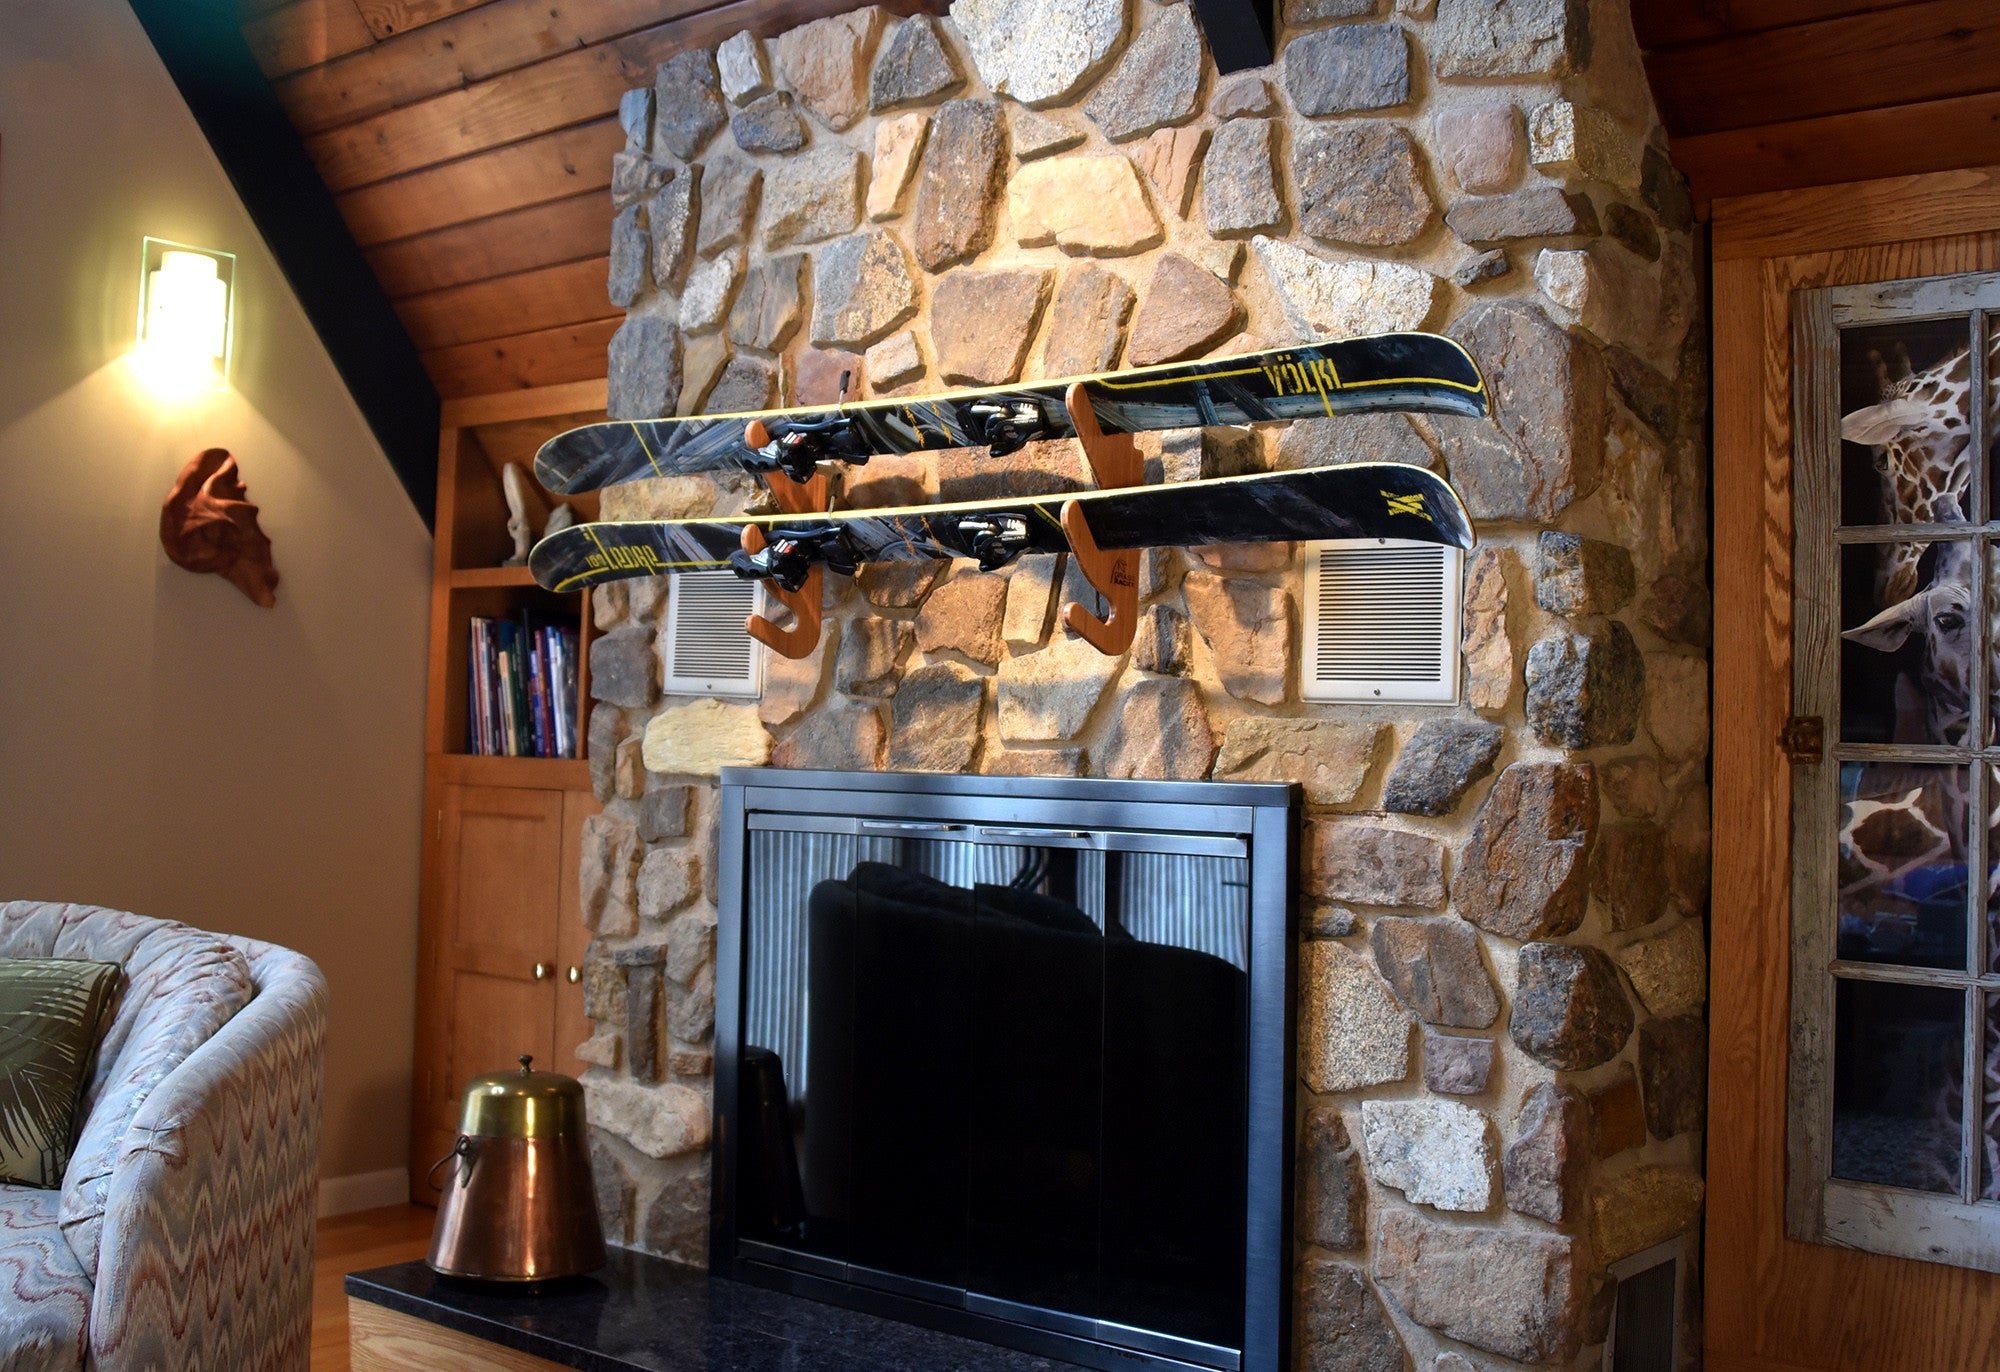 Grassracks Ski Rack - The Hallsteiner Duo Bamboo Ski Rack Living Room